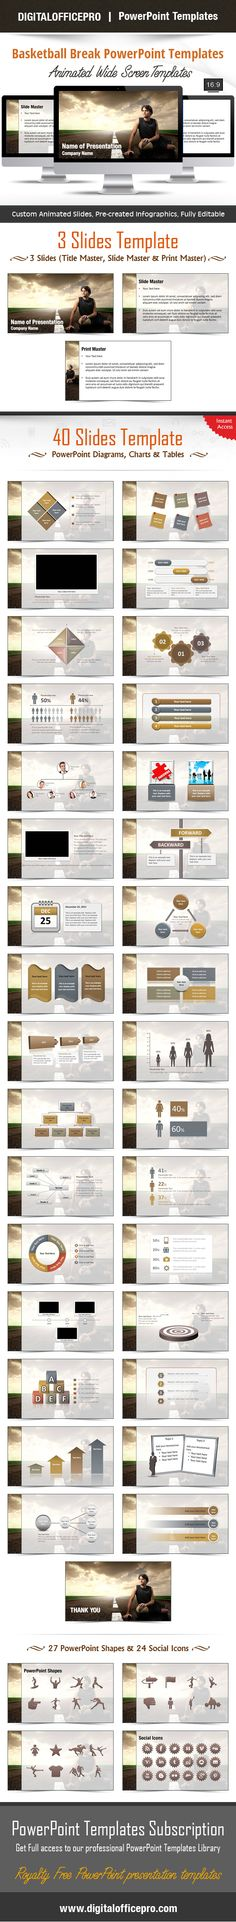 Bulb PowerPoint Template Backgrounds Bulbs, Of and Shape - basketball powerpoint template